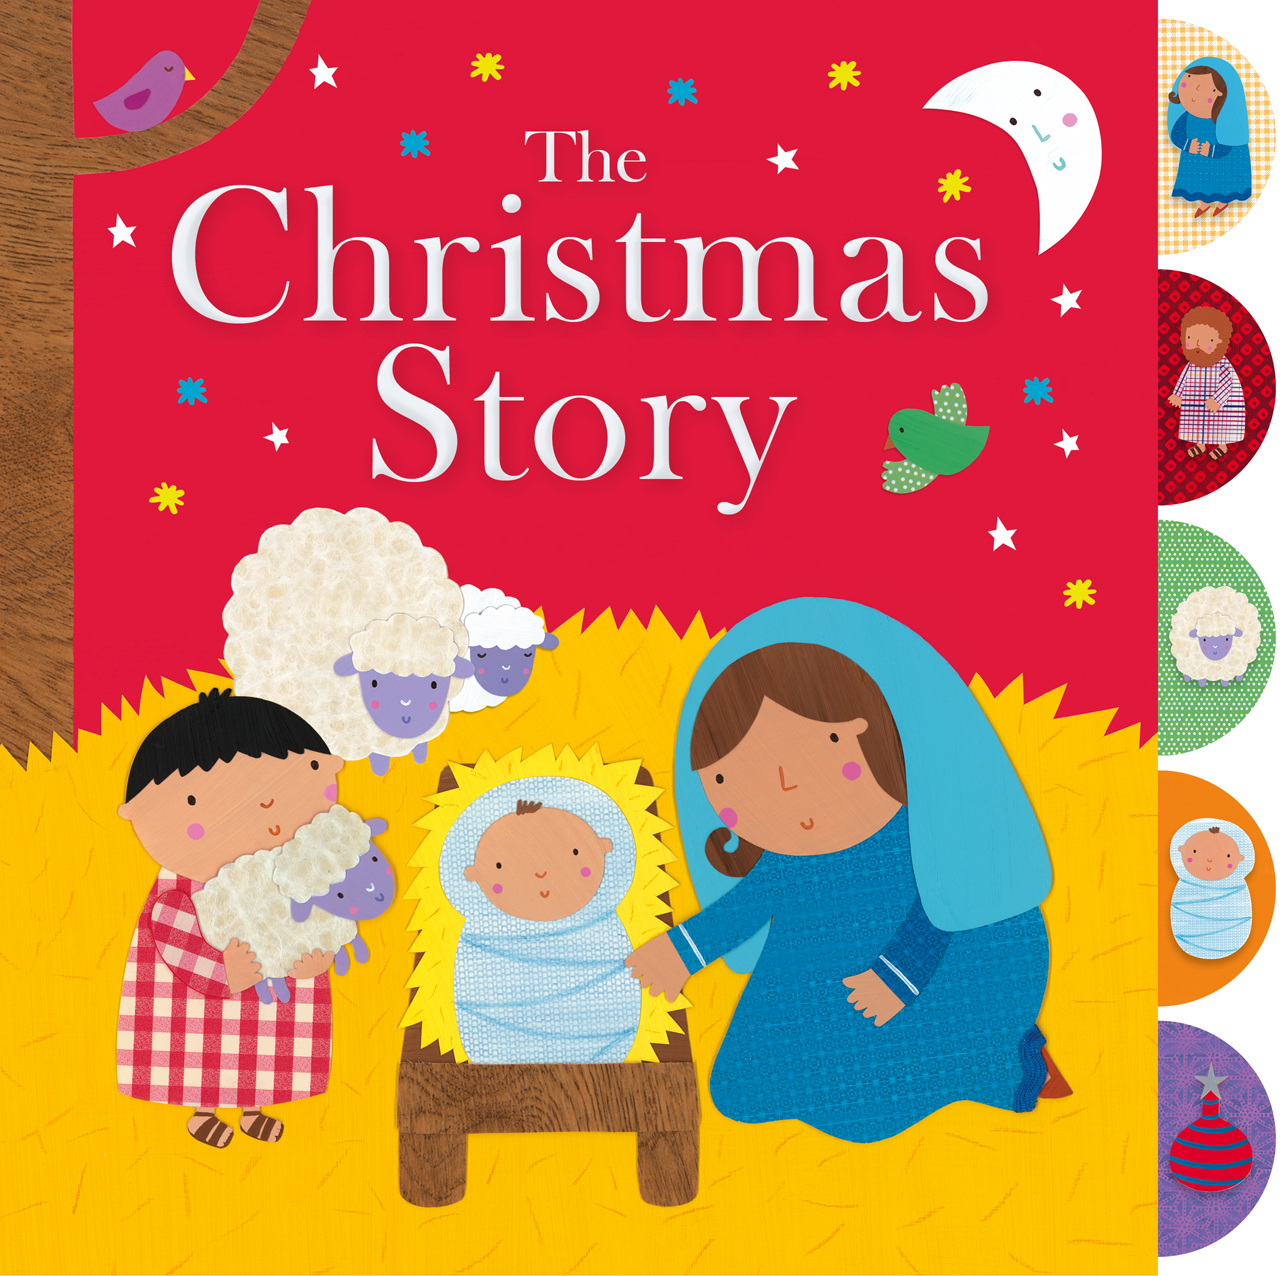 Uncategorized Christmas Story For Children the christmas story newsouth books full size image